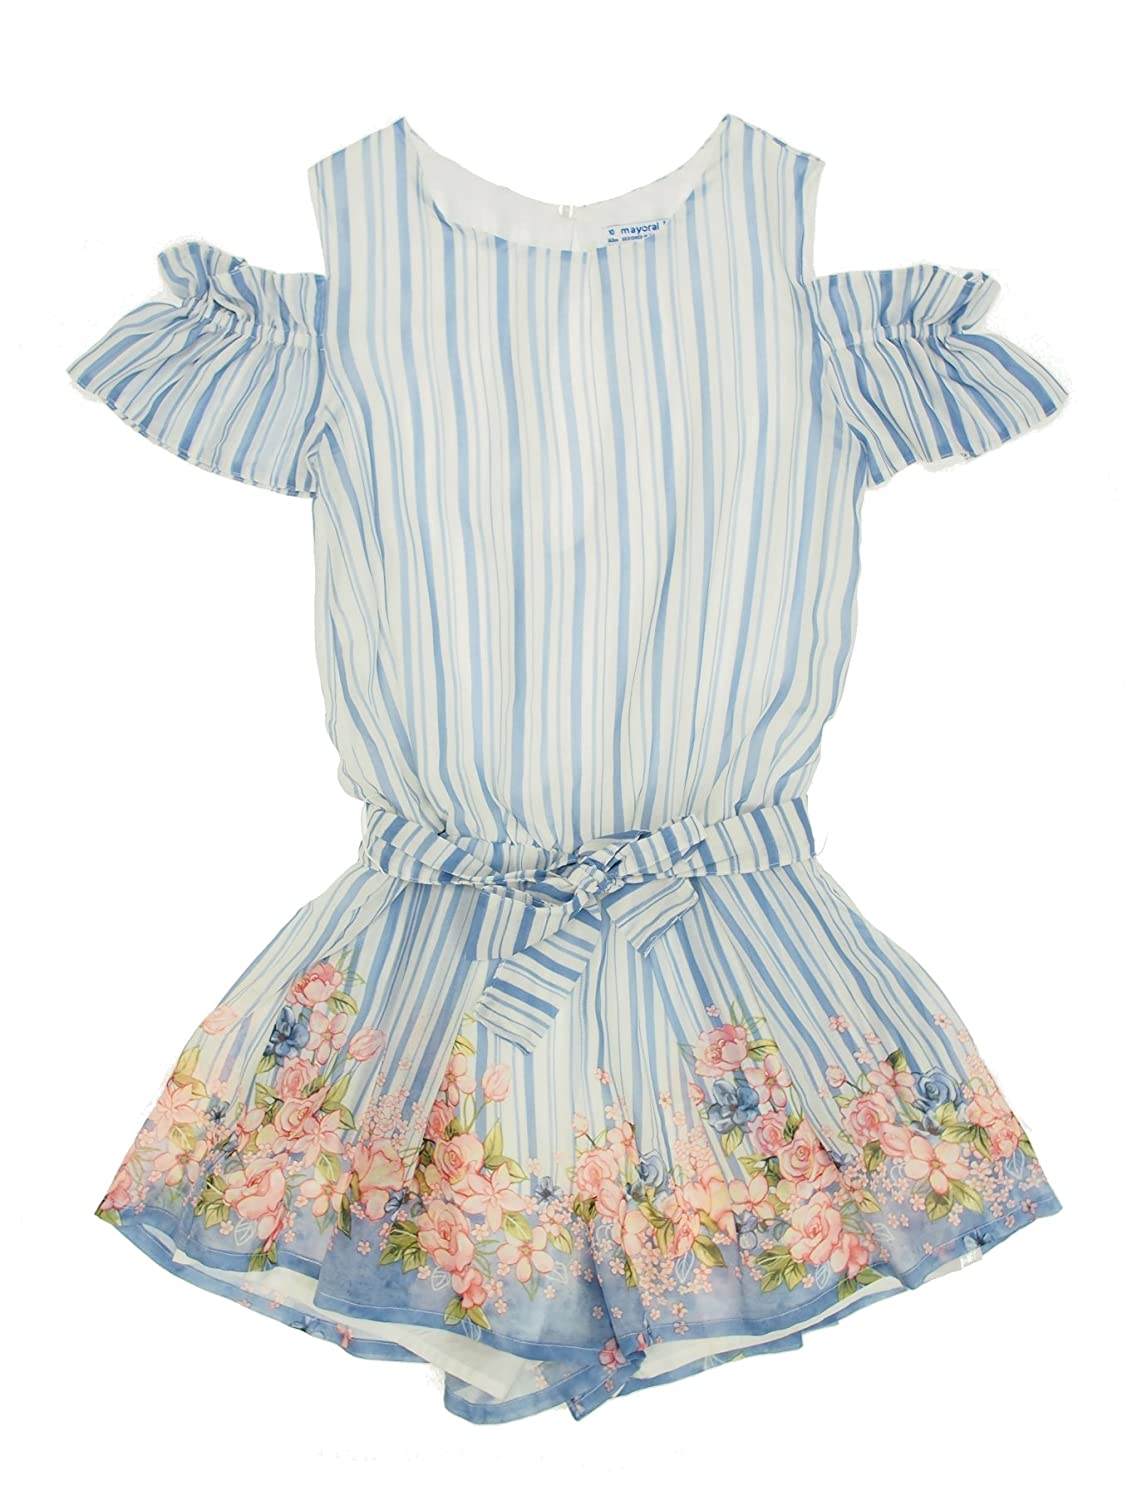 d530a90c30 Mayoral 28-06802-019 - Flowers Stripes Romper For Girls 14 Years Blue   Amazon.co.uk  Clothing